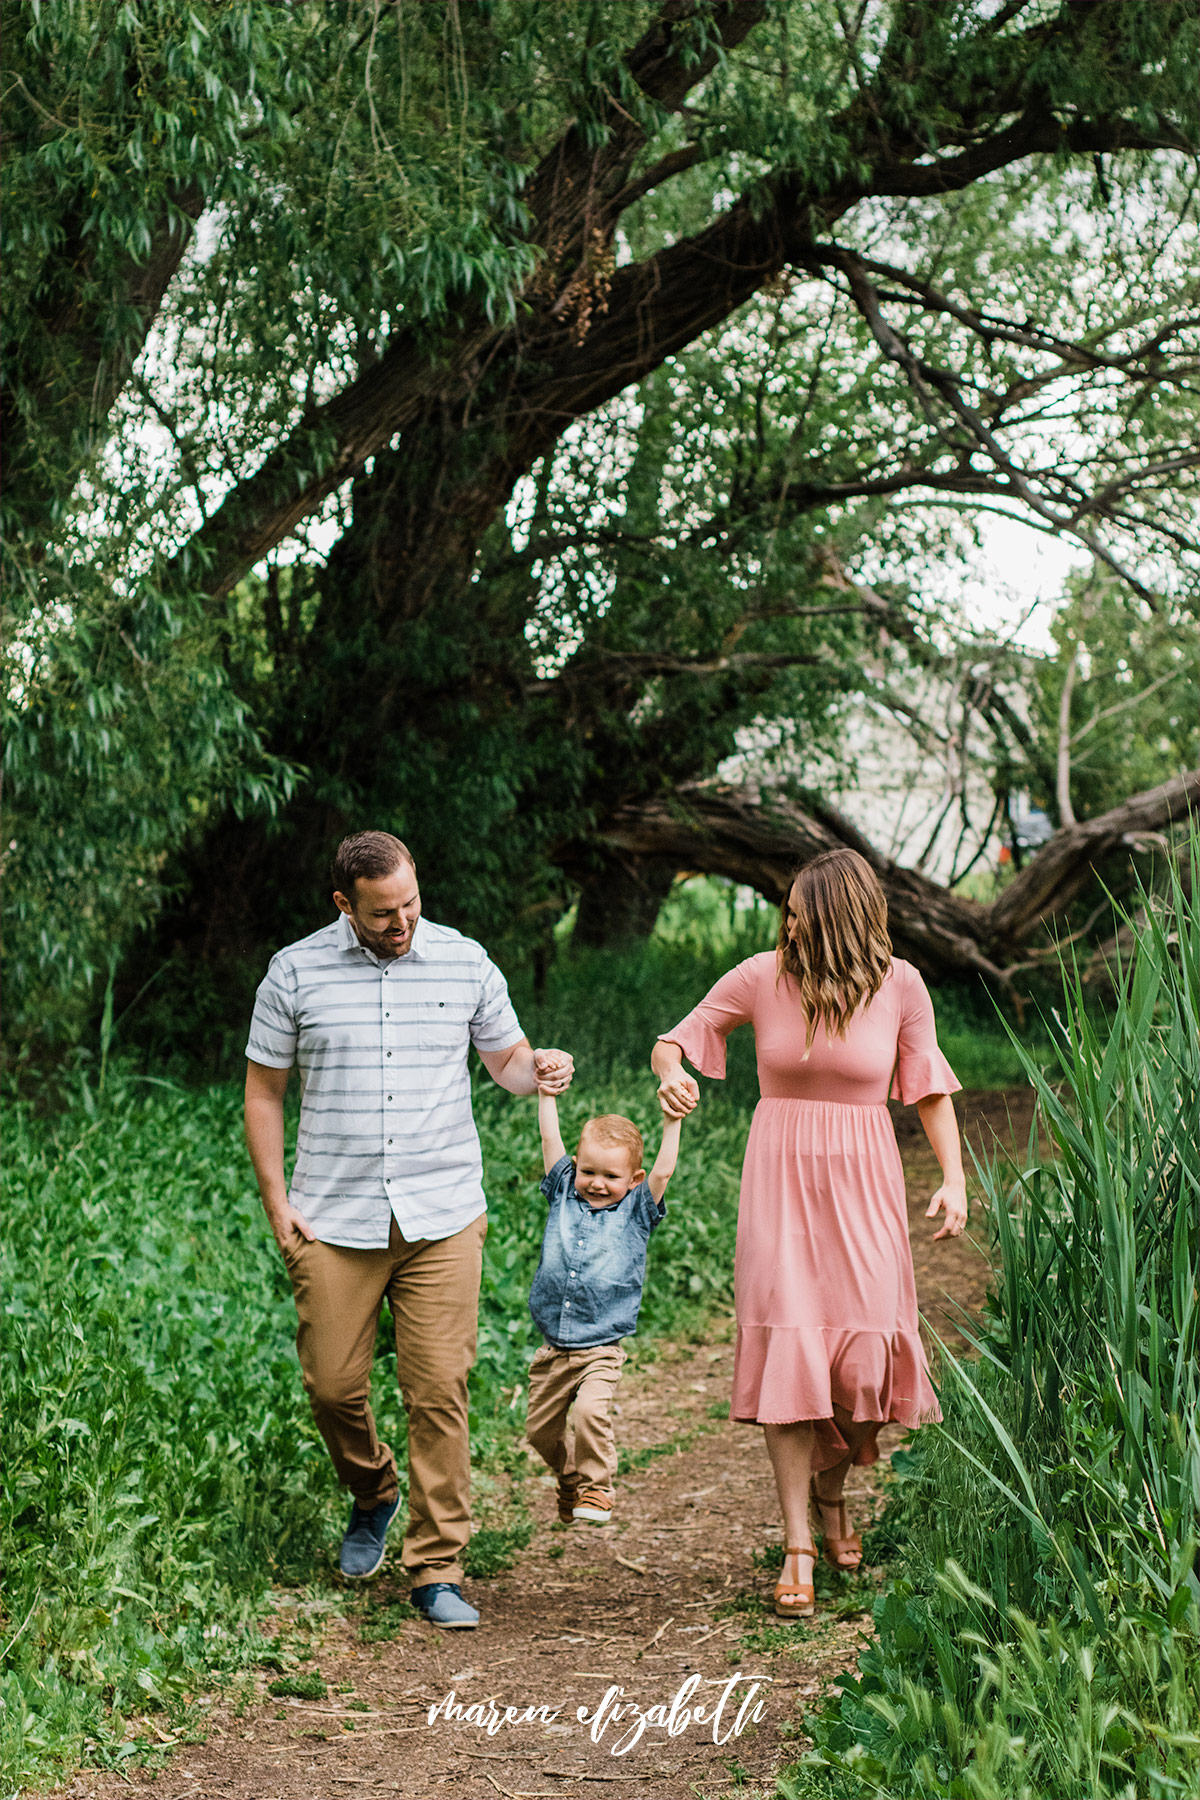 Loch Lomond Pond located in Saratoga Springs, UT is one of my go to spots for family pictures. Plus tips for taking pictures, especially with toddlers.